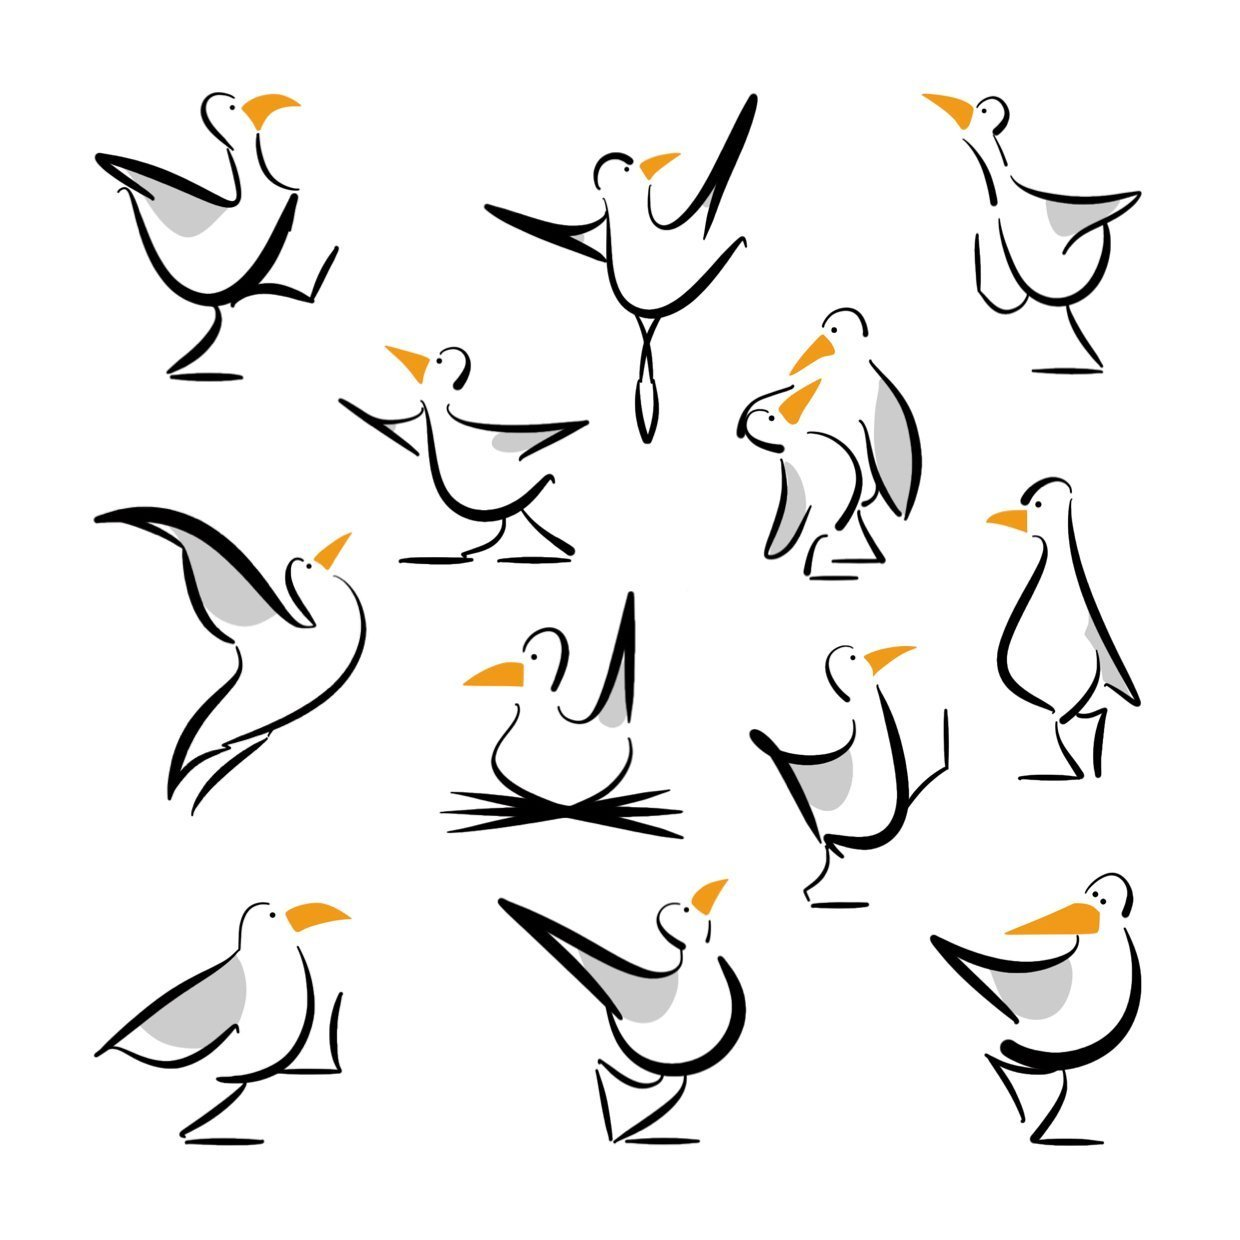 seagull illustrations lucy monkman